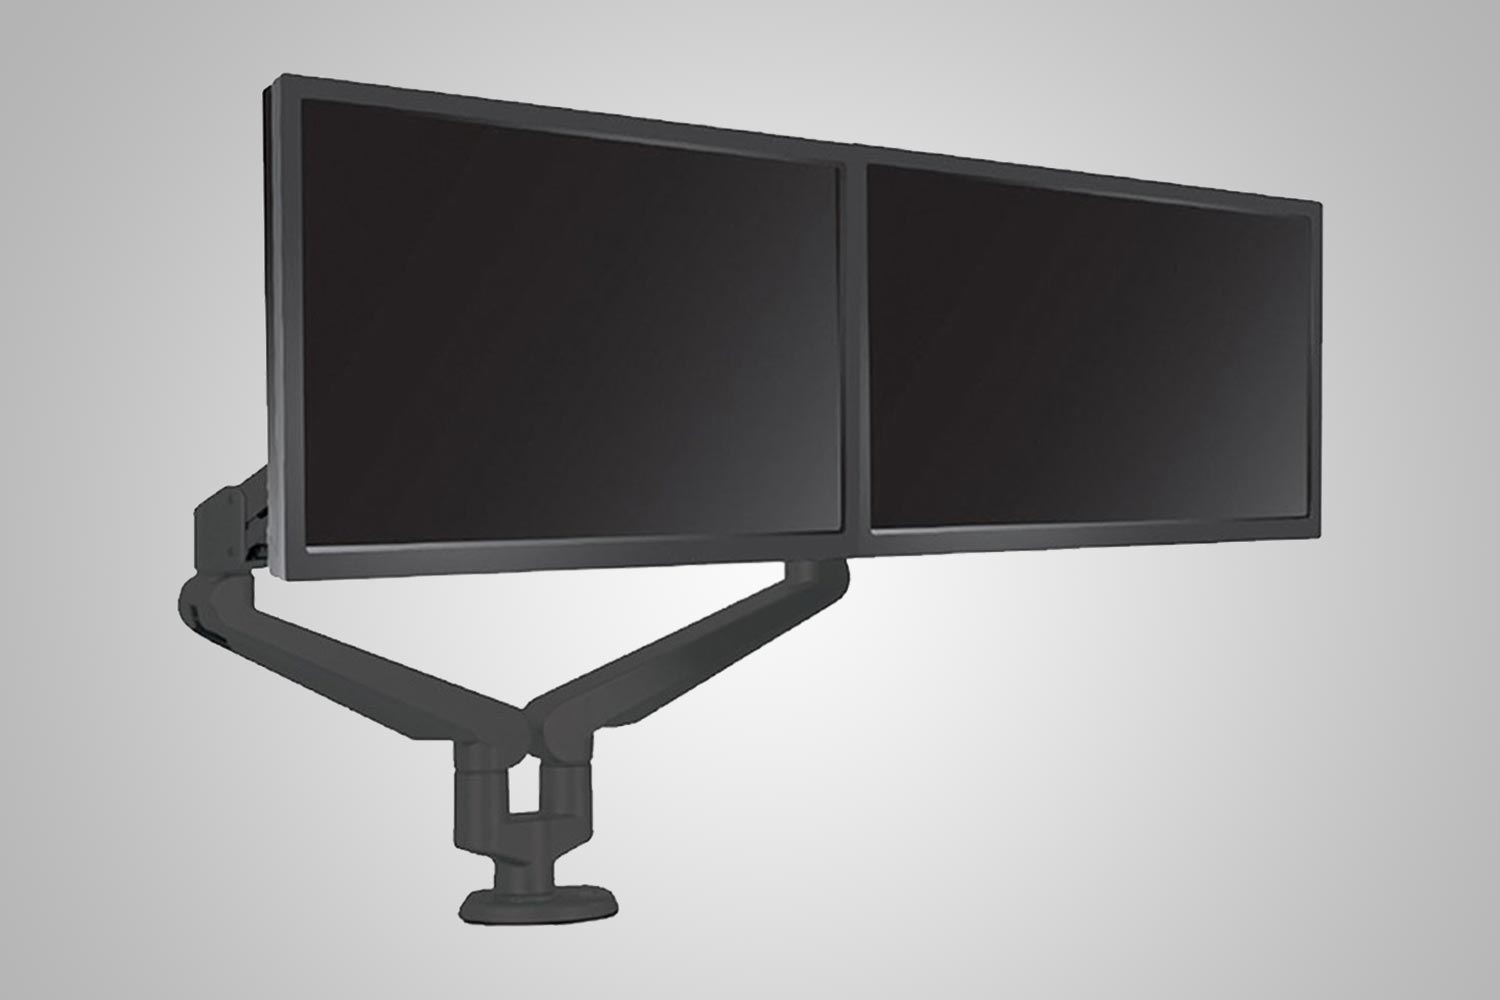 Dual Monitor Arm Specs